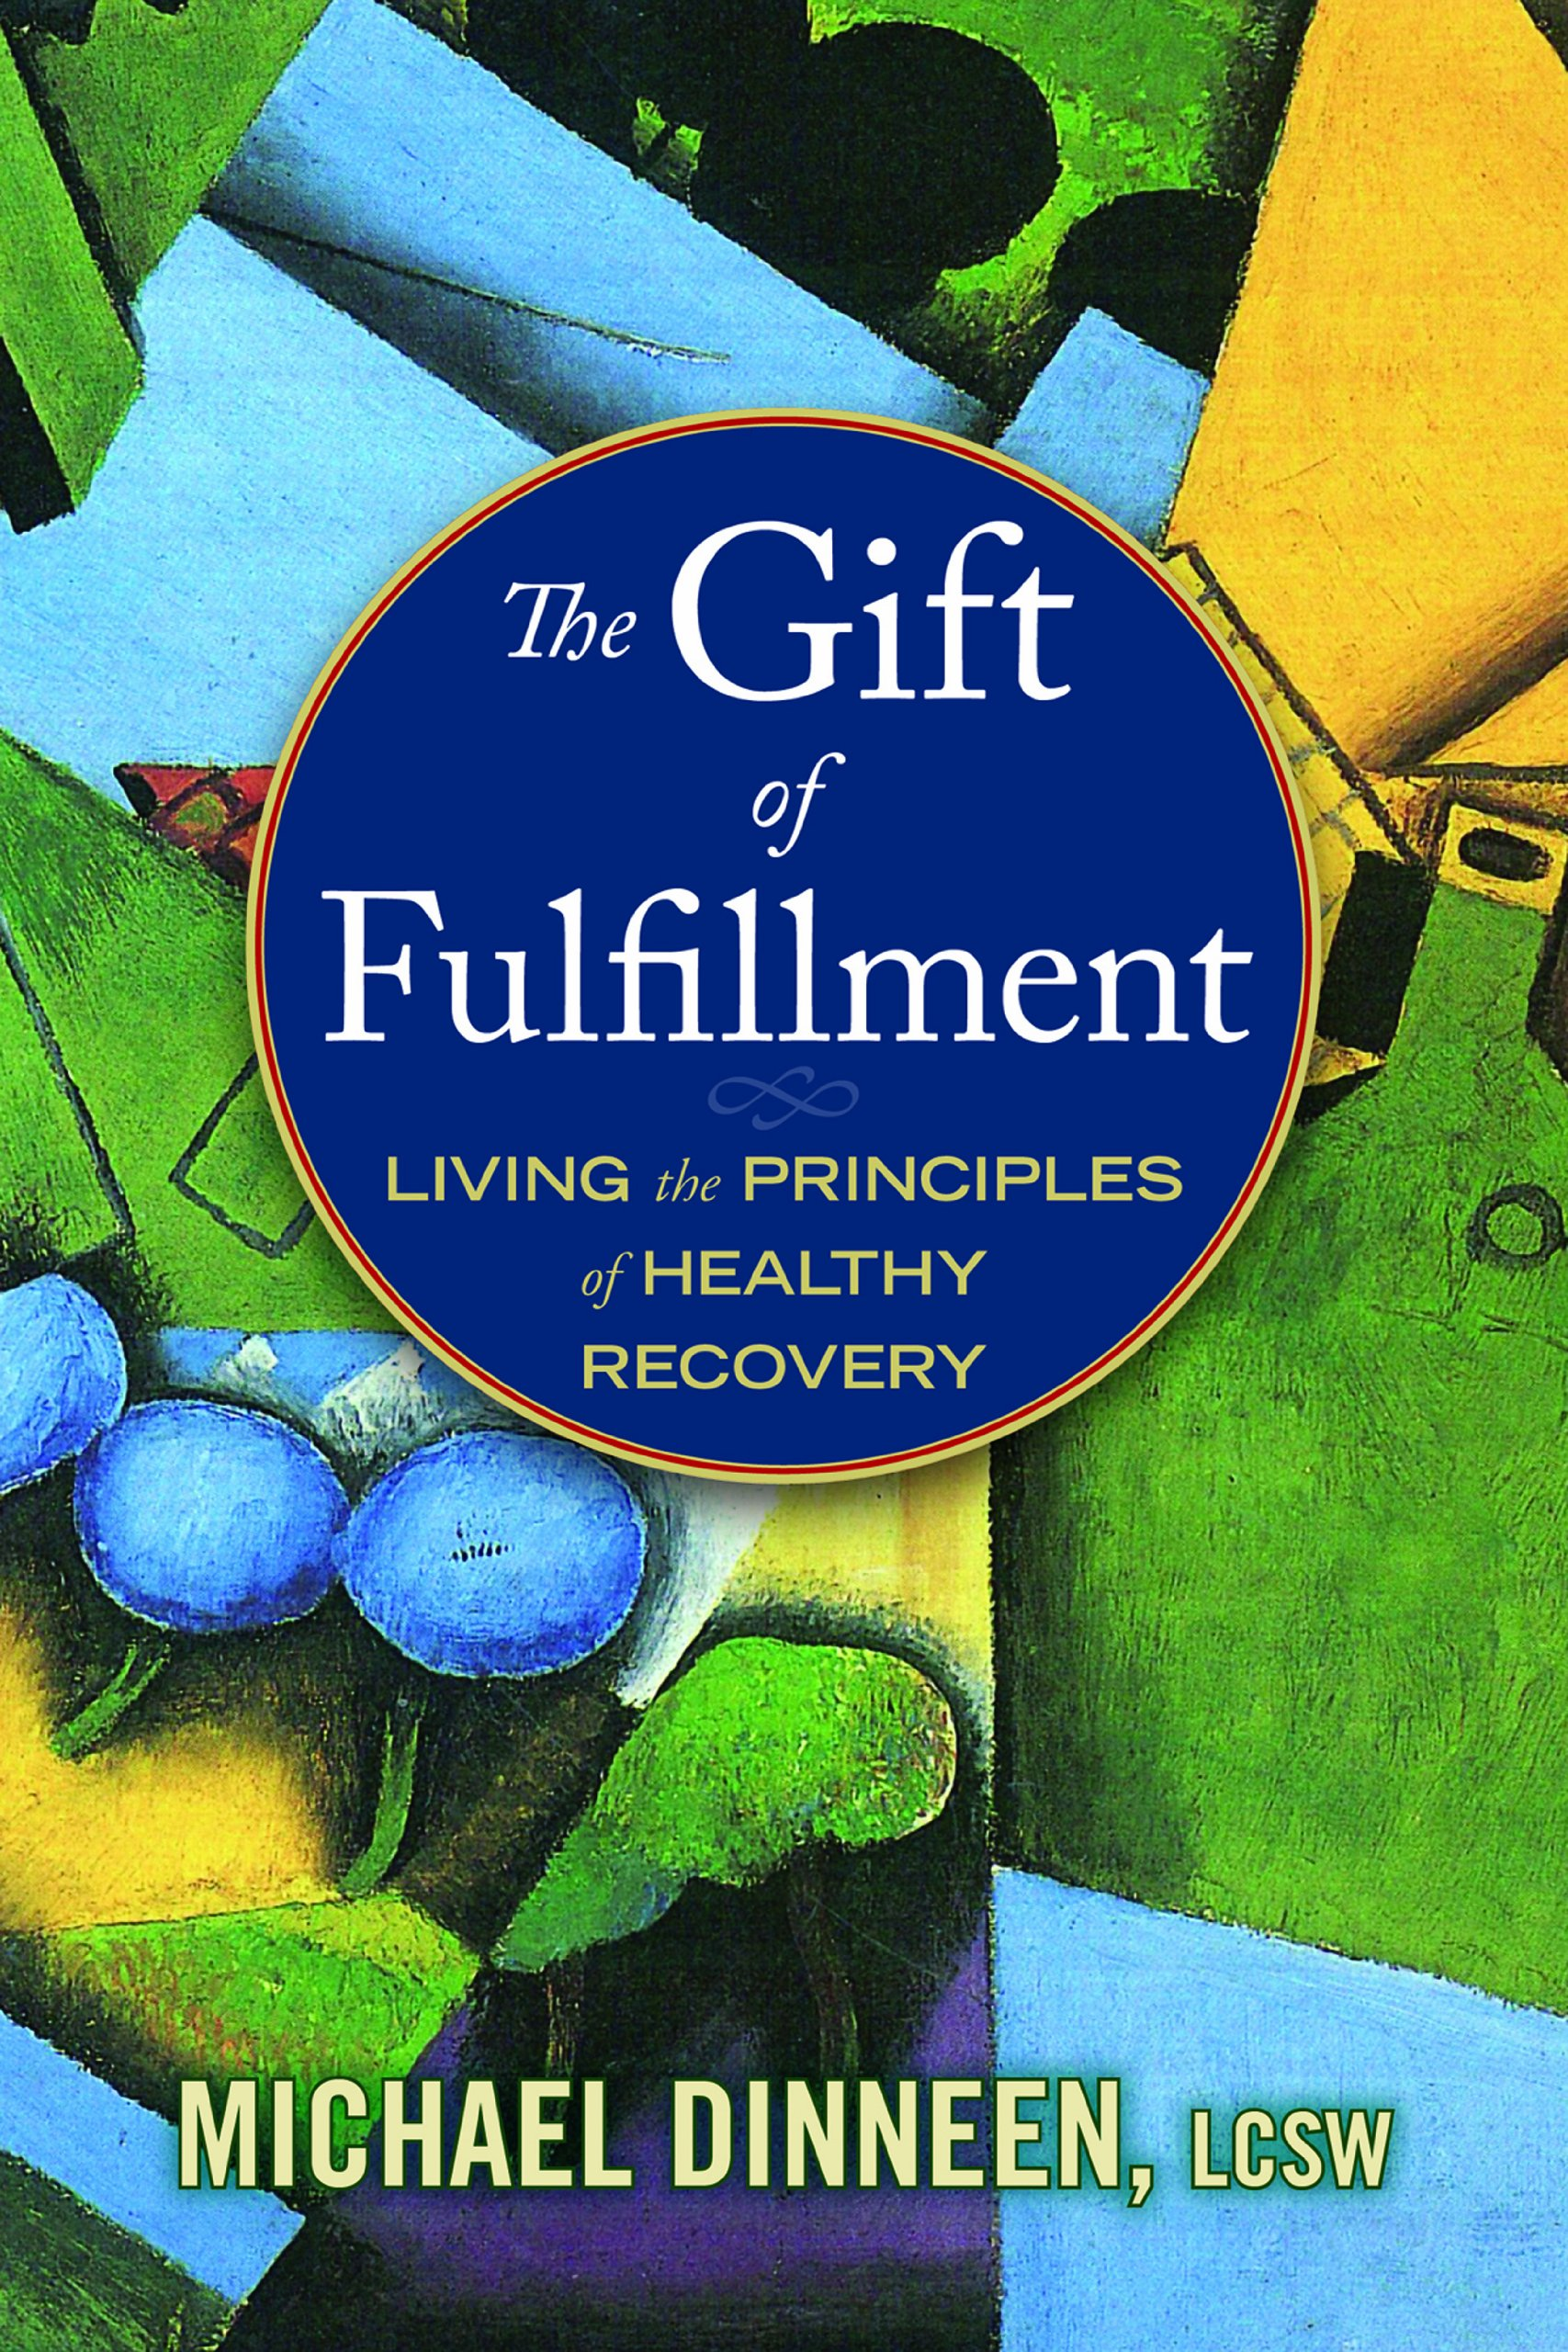 The Gift of Fulfillment: Living the Principles of Healthy Recovery pdf